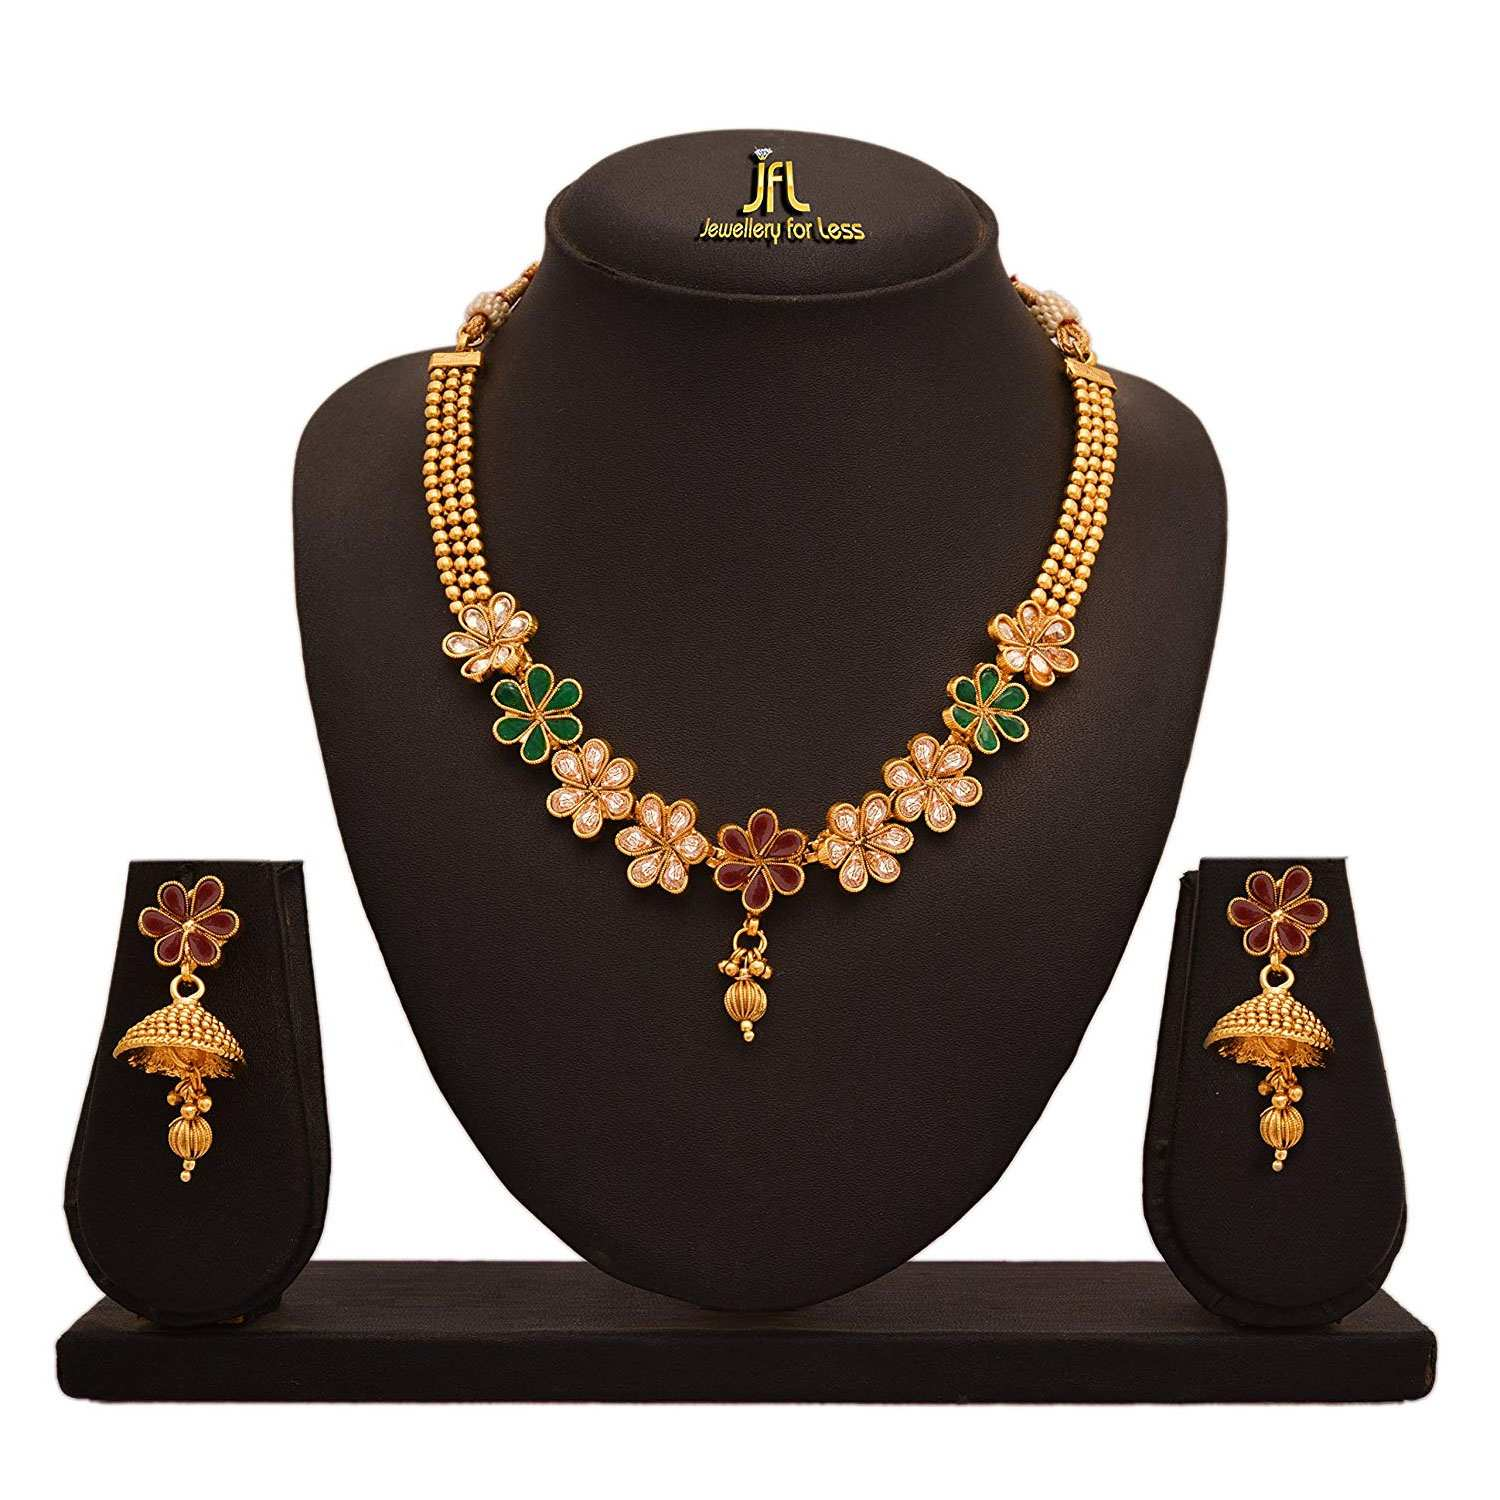 JFL - Traditional Ethnic One Gram Gold Plated Stone & Diamond Designer Necklace Set for Women.